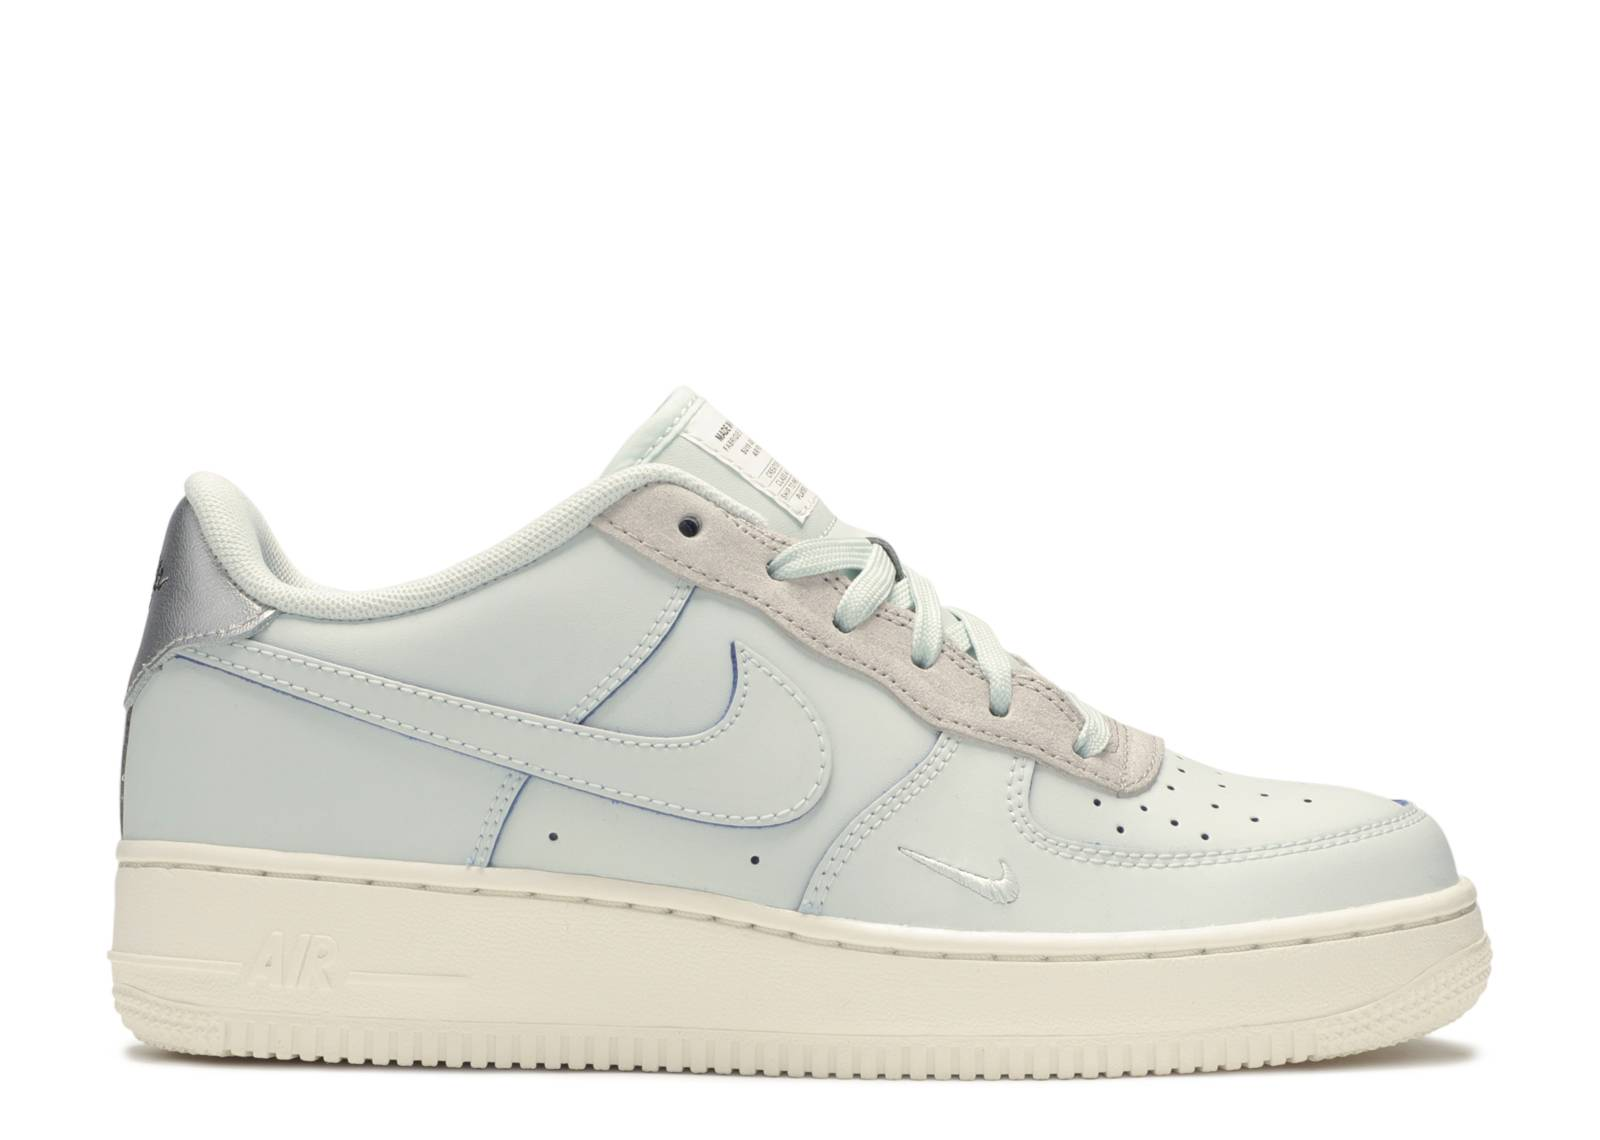 """Devin Booker x Air Force 1 Low GS 'Moss Point' """"Moss Point"""""""